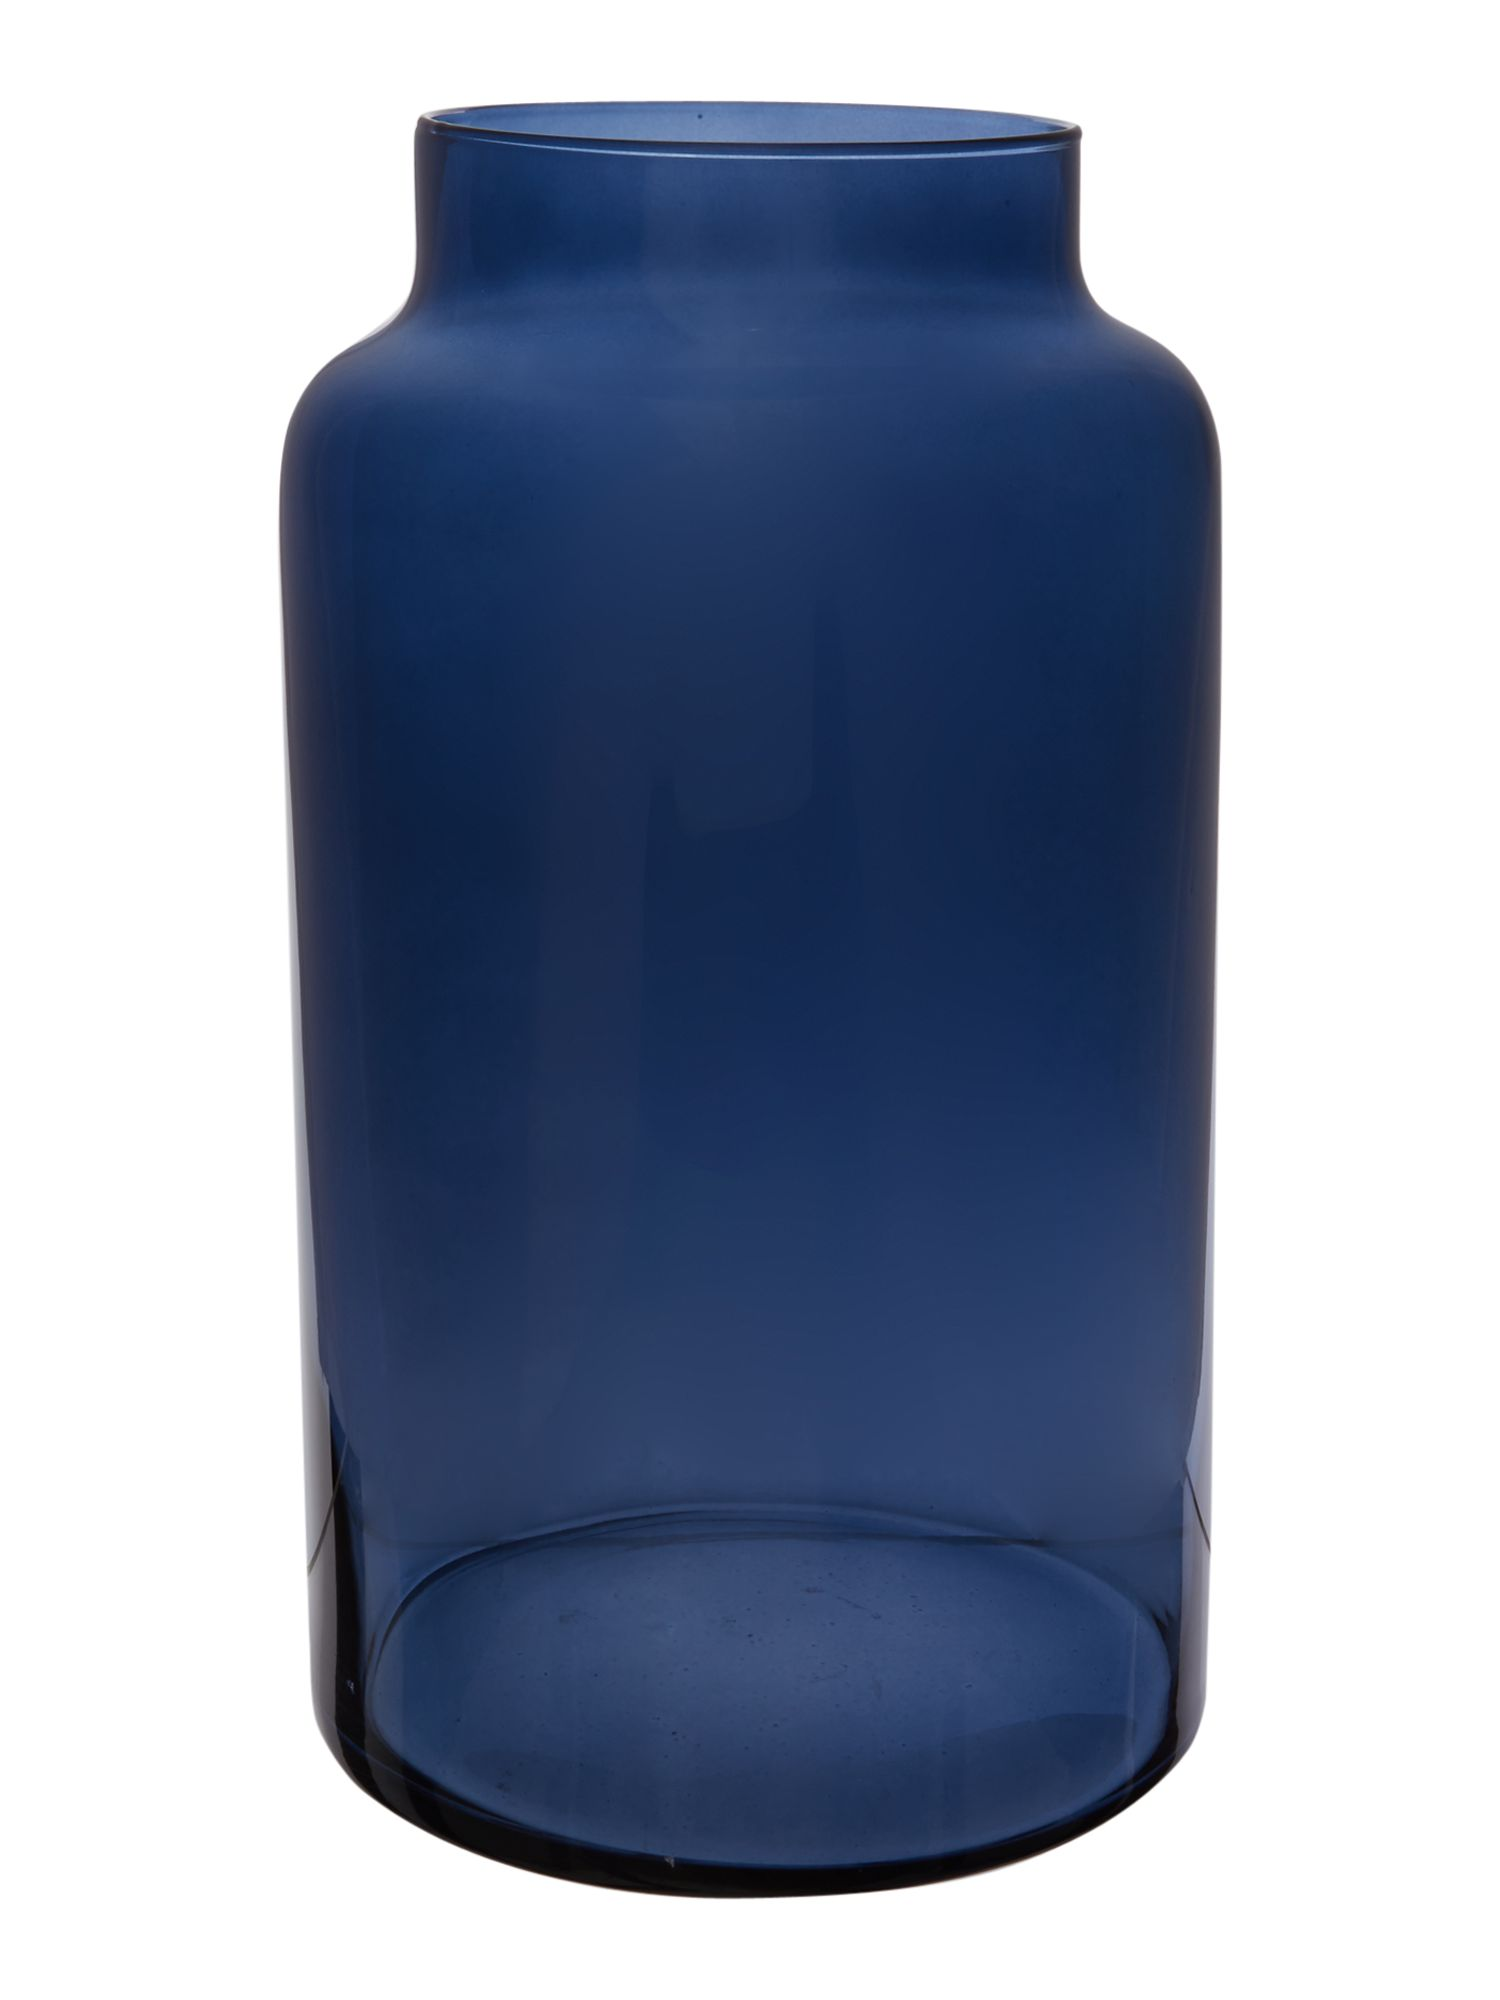 Navy glass large vase